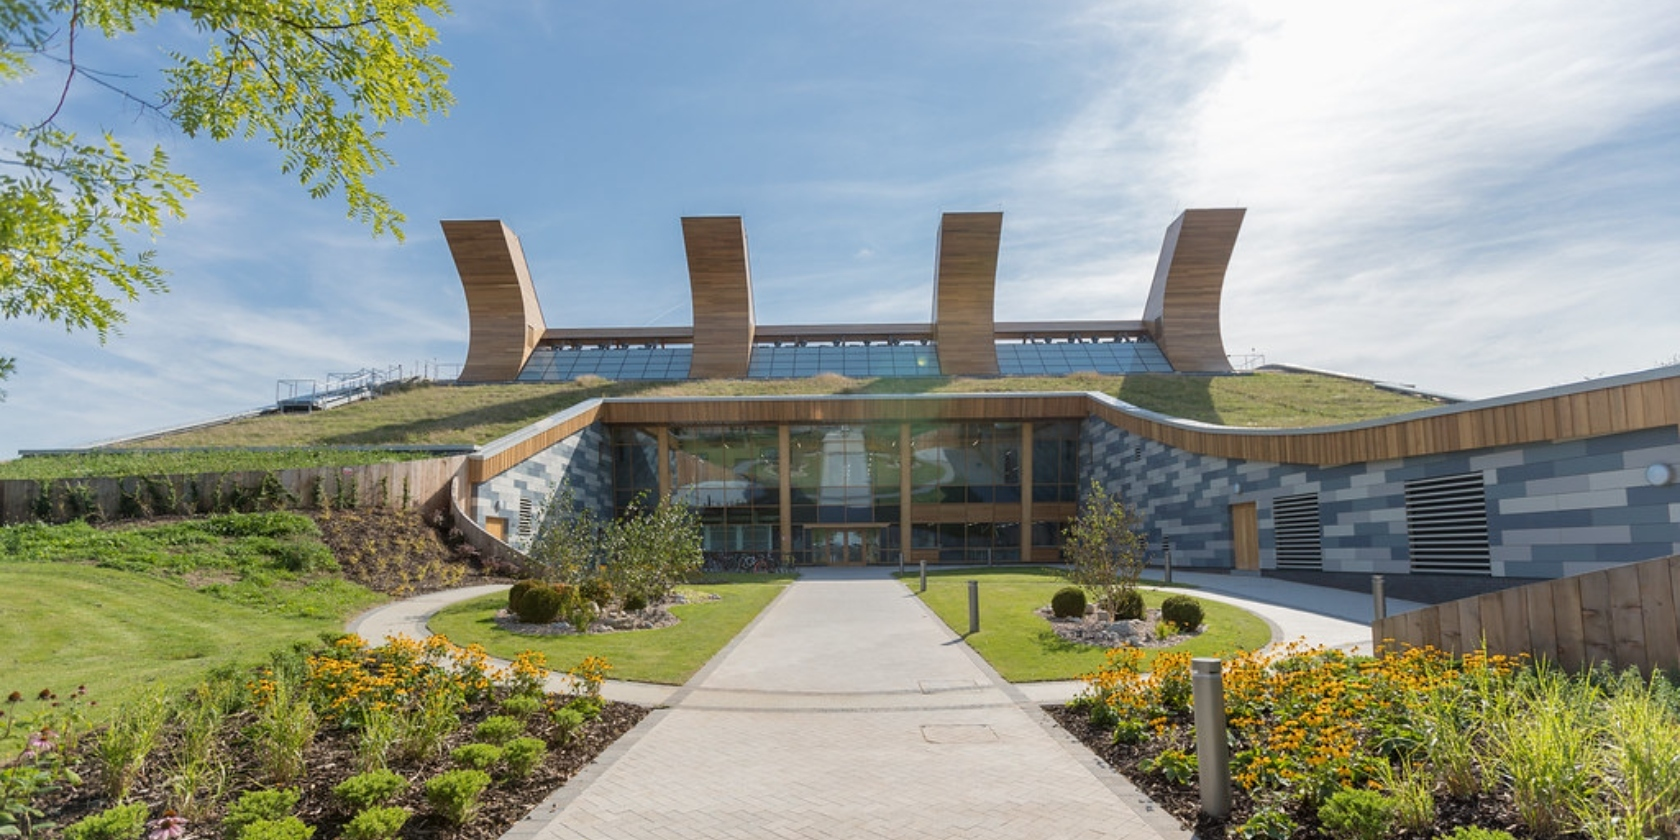 Jubilee campus on a sunny day.